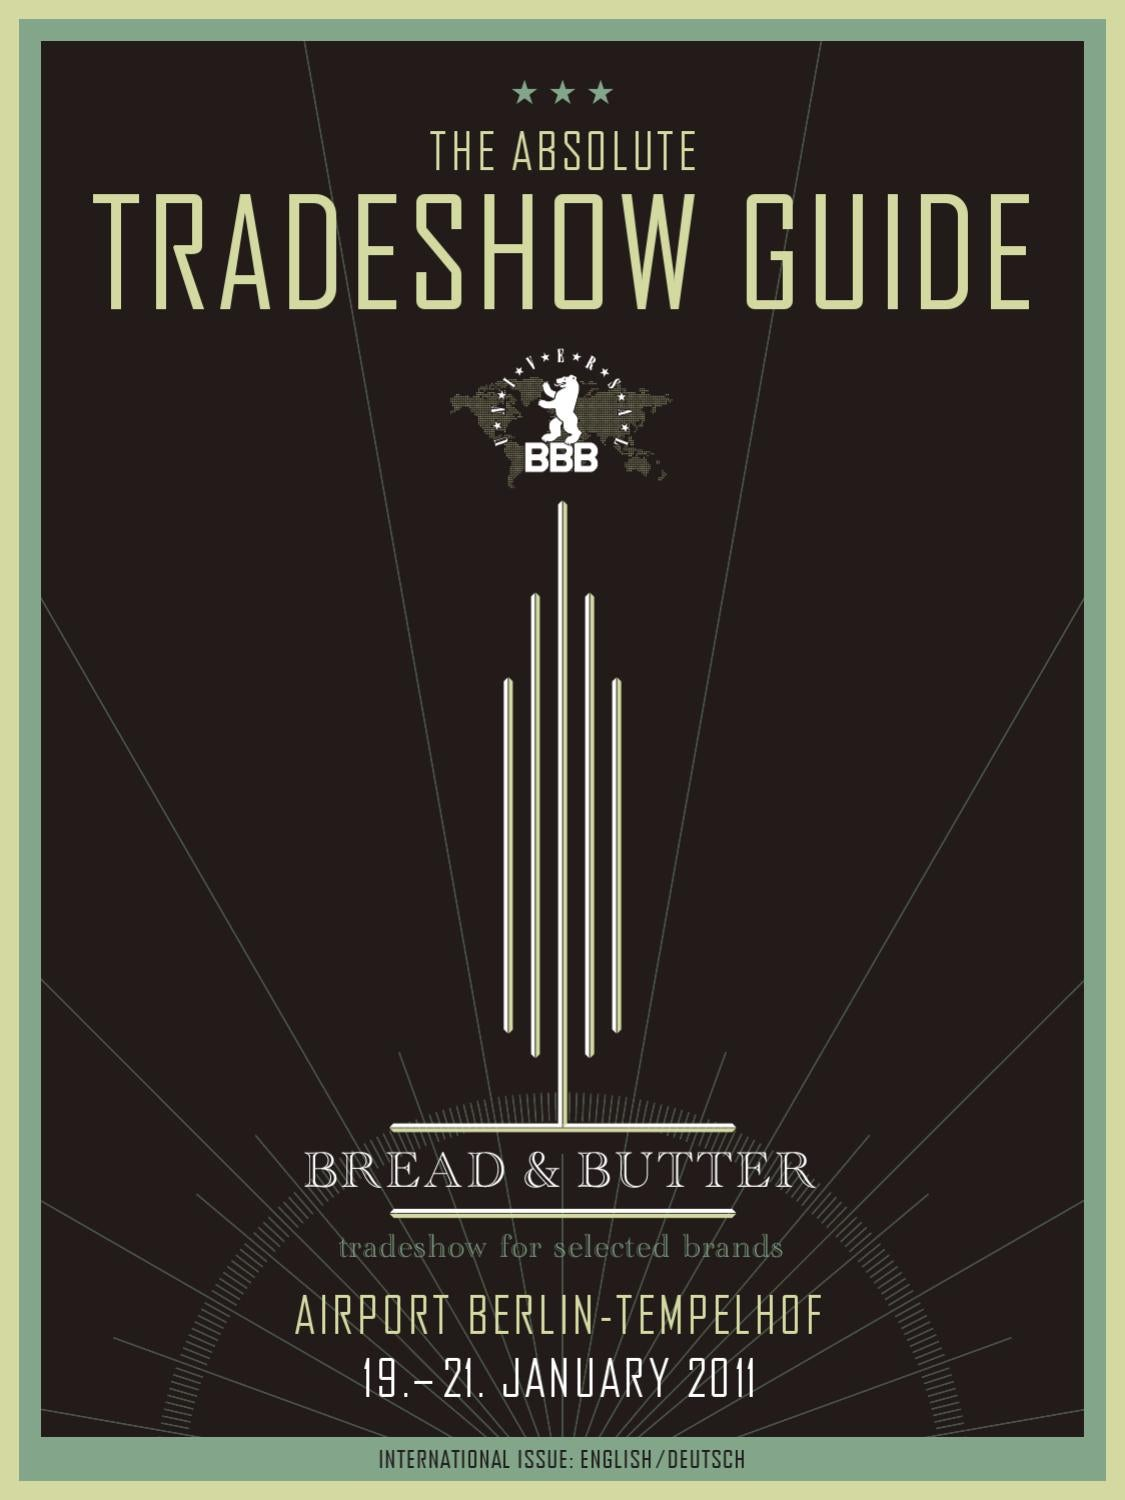 Tradeshow Guide Absolute By BREAD U0026 Butter GmbH U0026 Co. KG   Issuu